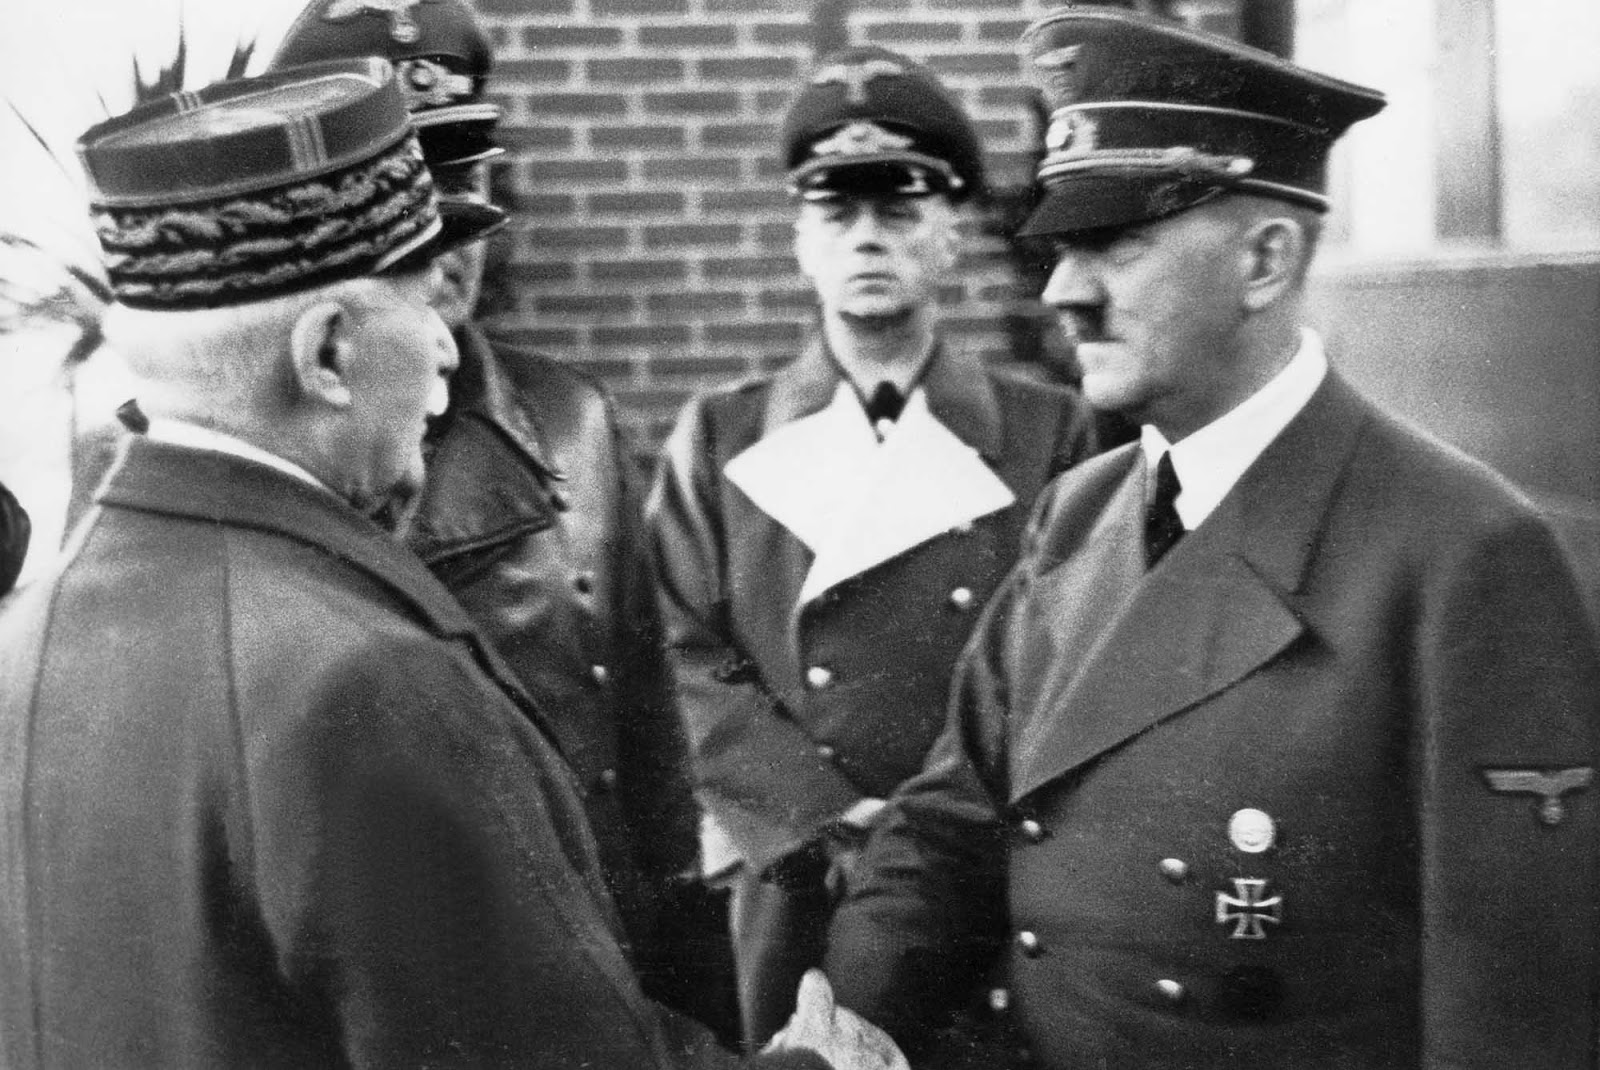 Unfortunately the image of him shaking hands with Hitler came to represent a view that he was engaged in collaboration with the Nazi's, rather than a more pragmatic co-operation. It became evidence to portray him as a traitor to France.